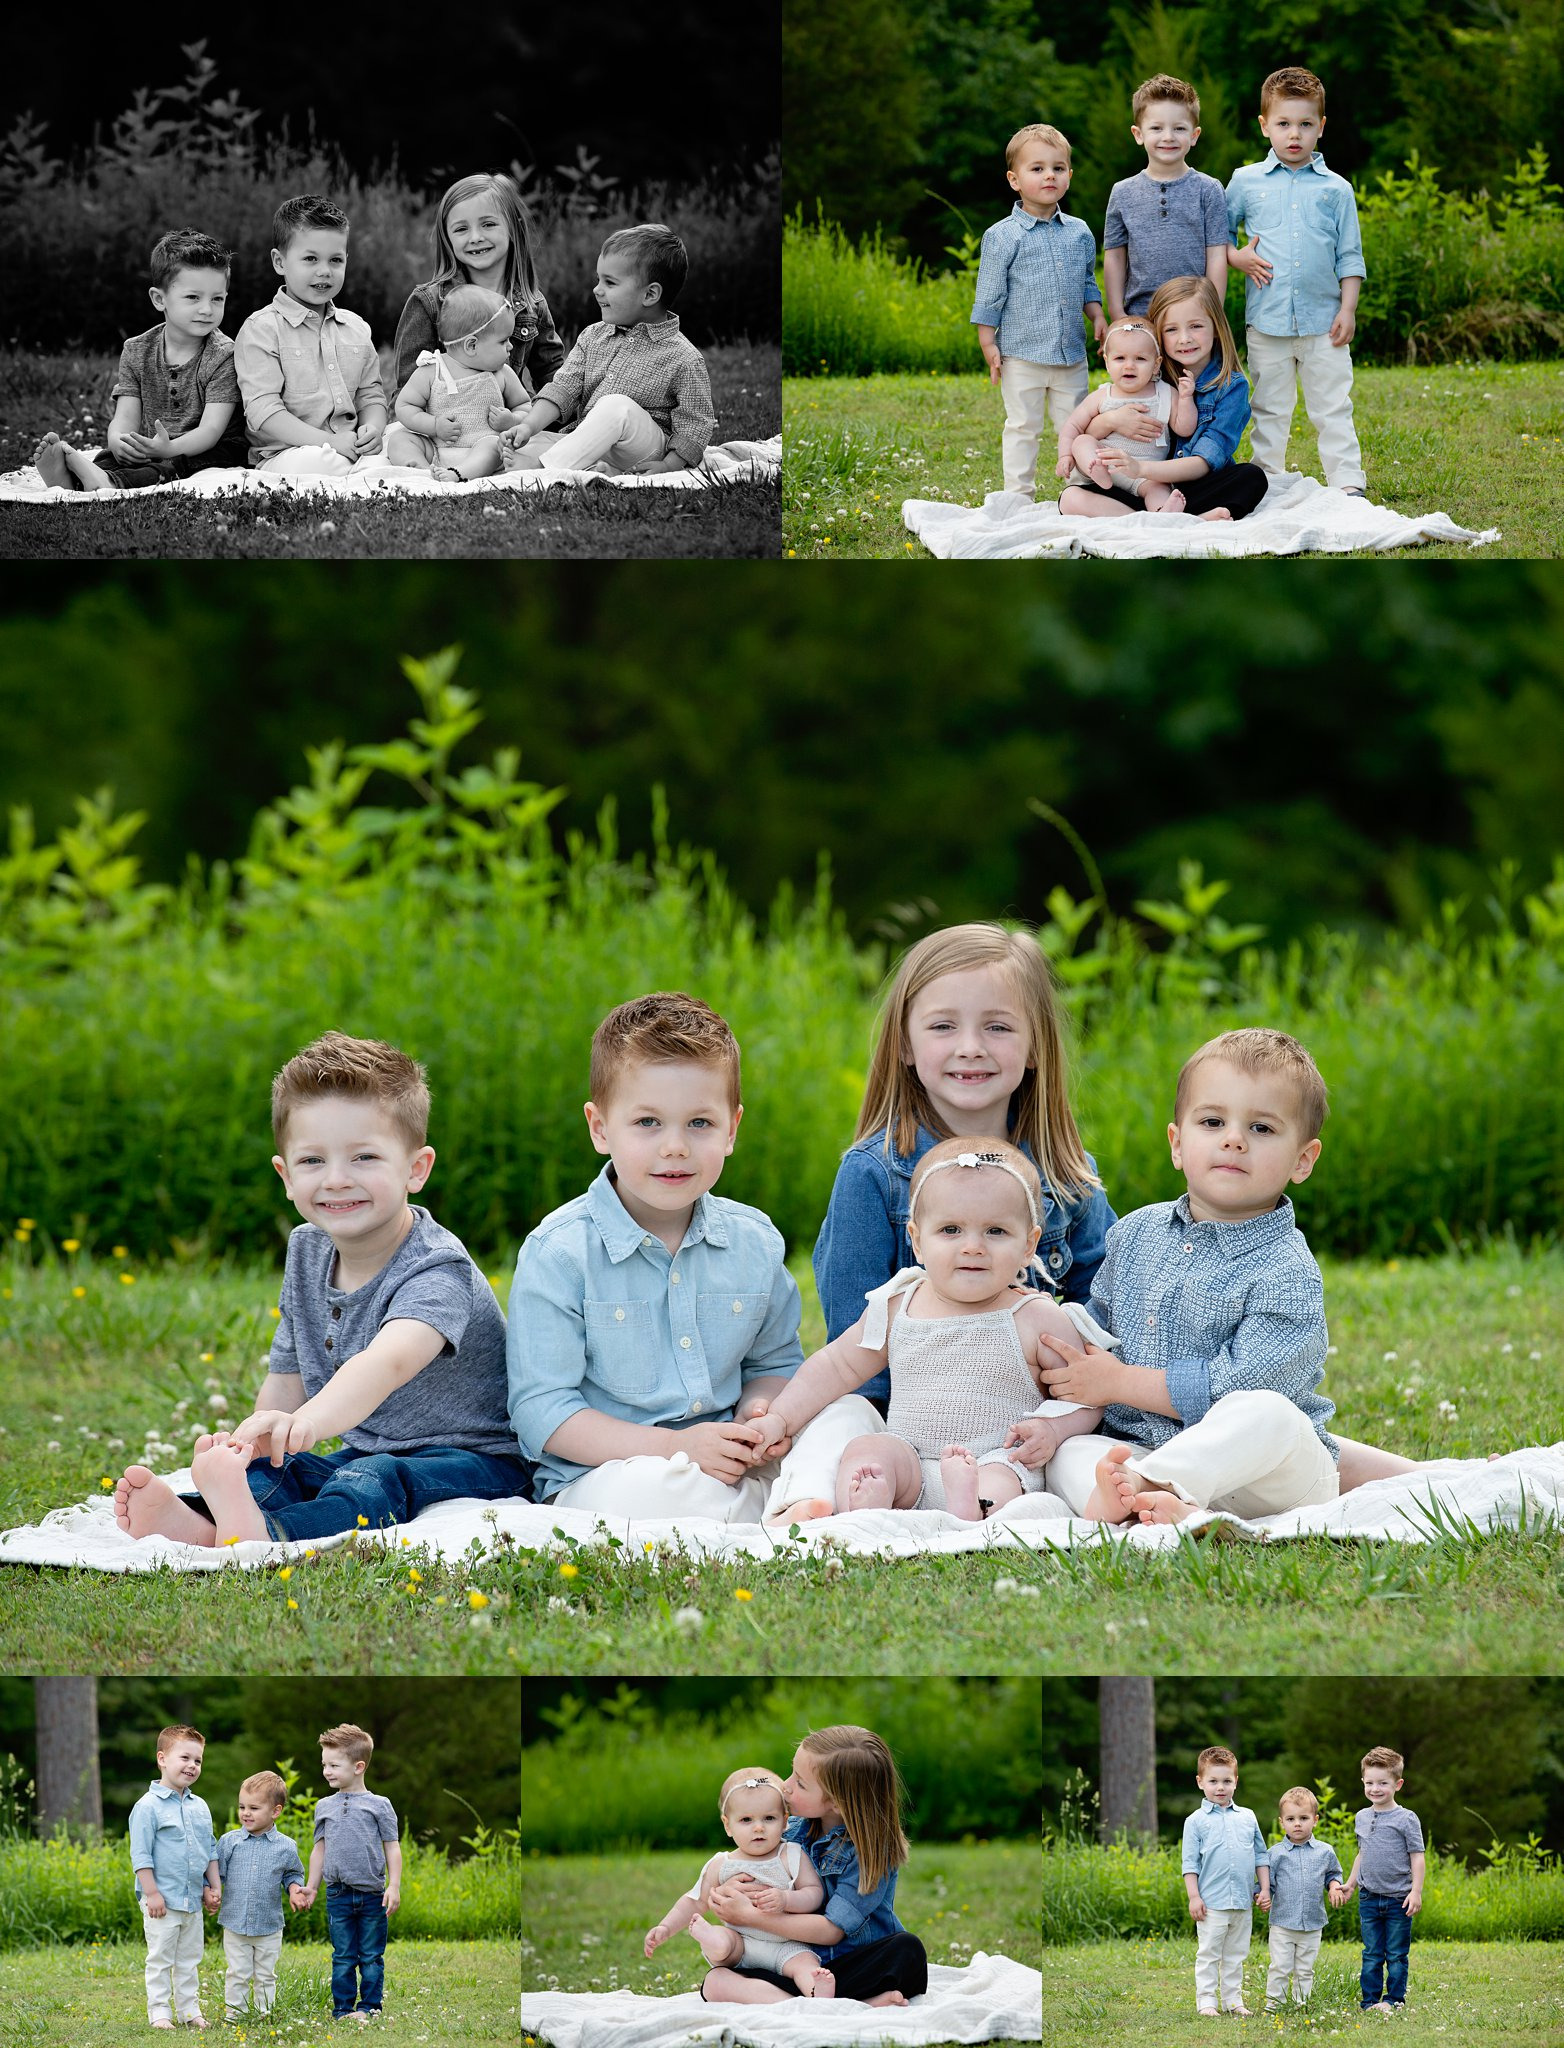 Raleigh_Spring_Mini_Session_Family_Photography.jpg